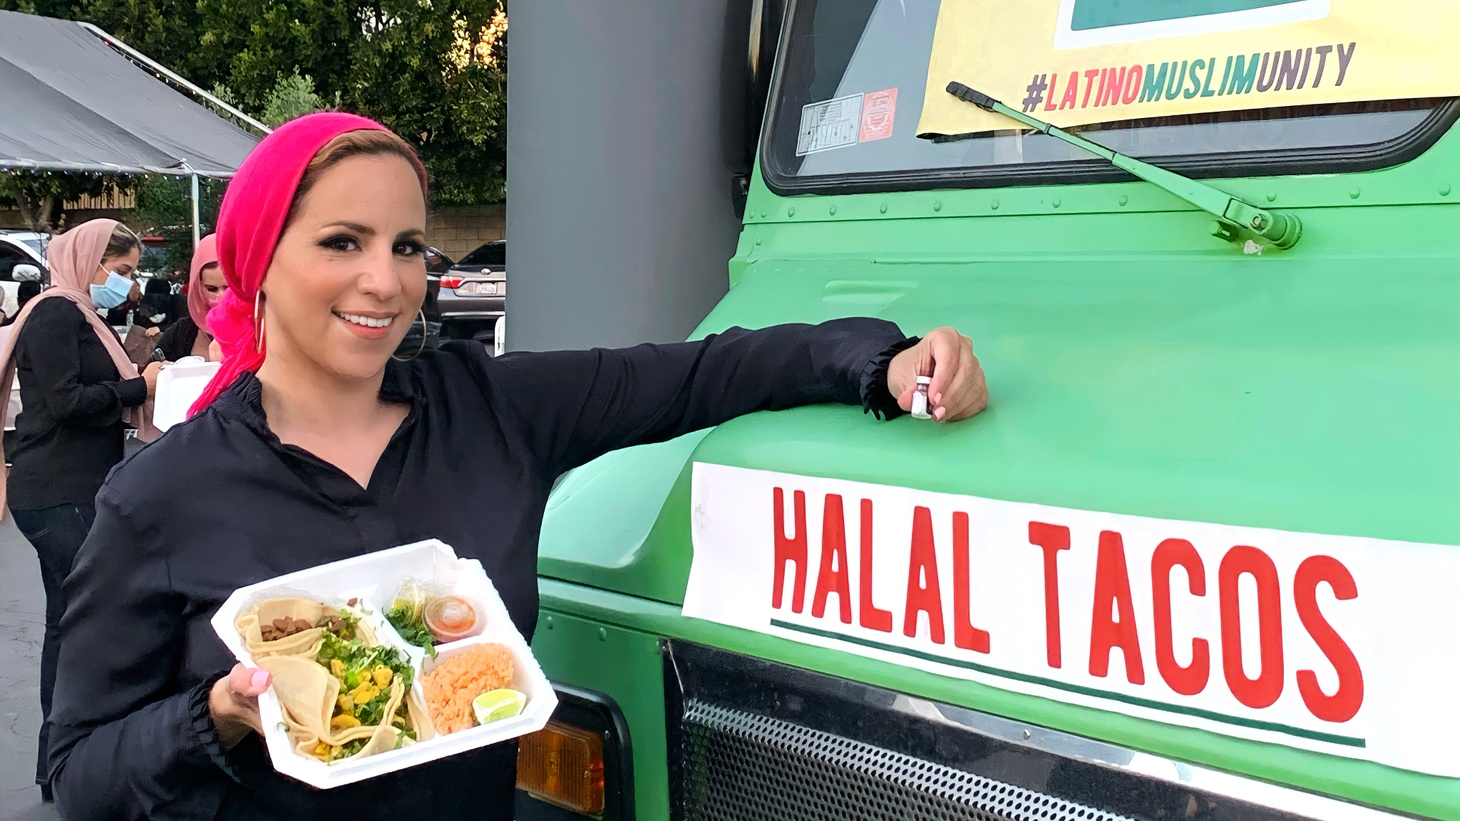 Rida Hamida holds a halal taco in one hand and a vaccination dose in the other at the Islamic Center of Santa Ana.